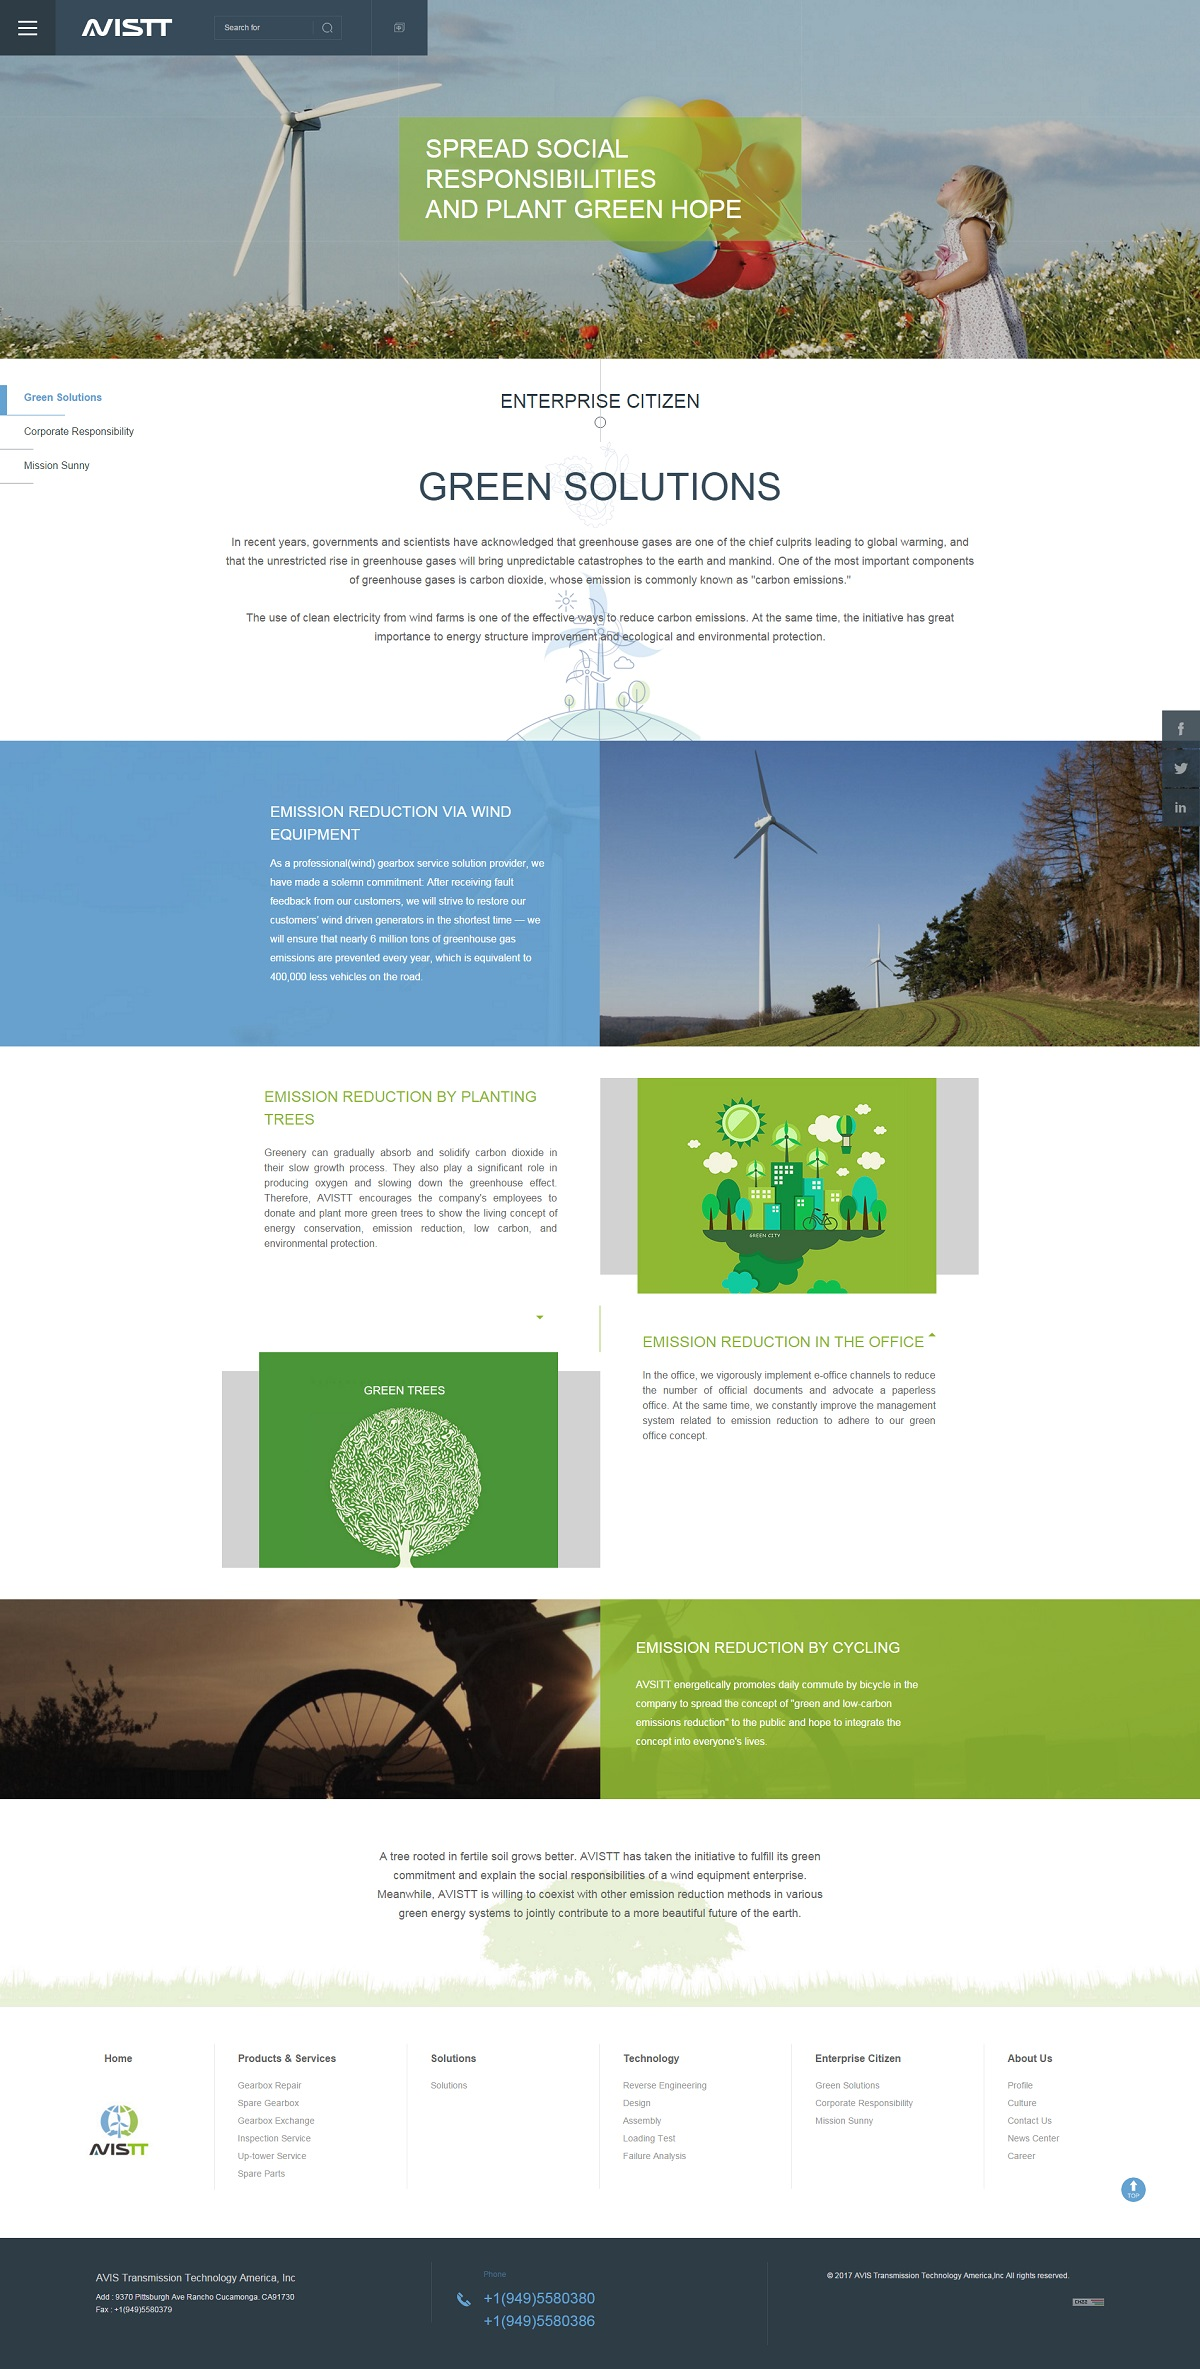 GREEN SOLUTIONS-AVIS Transmission Technology20.jpg